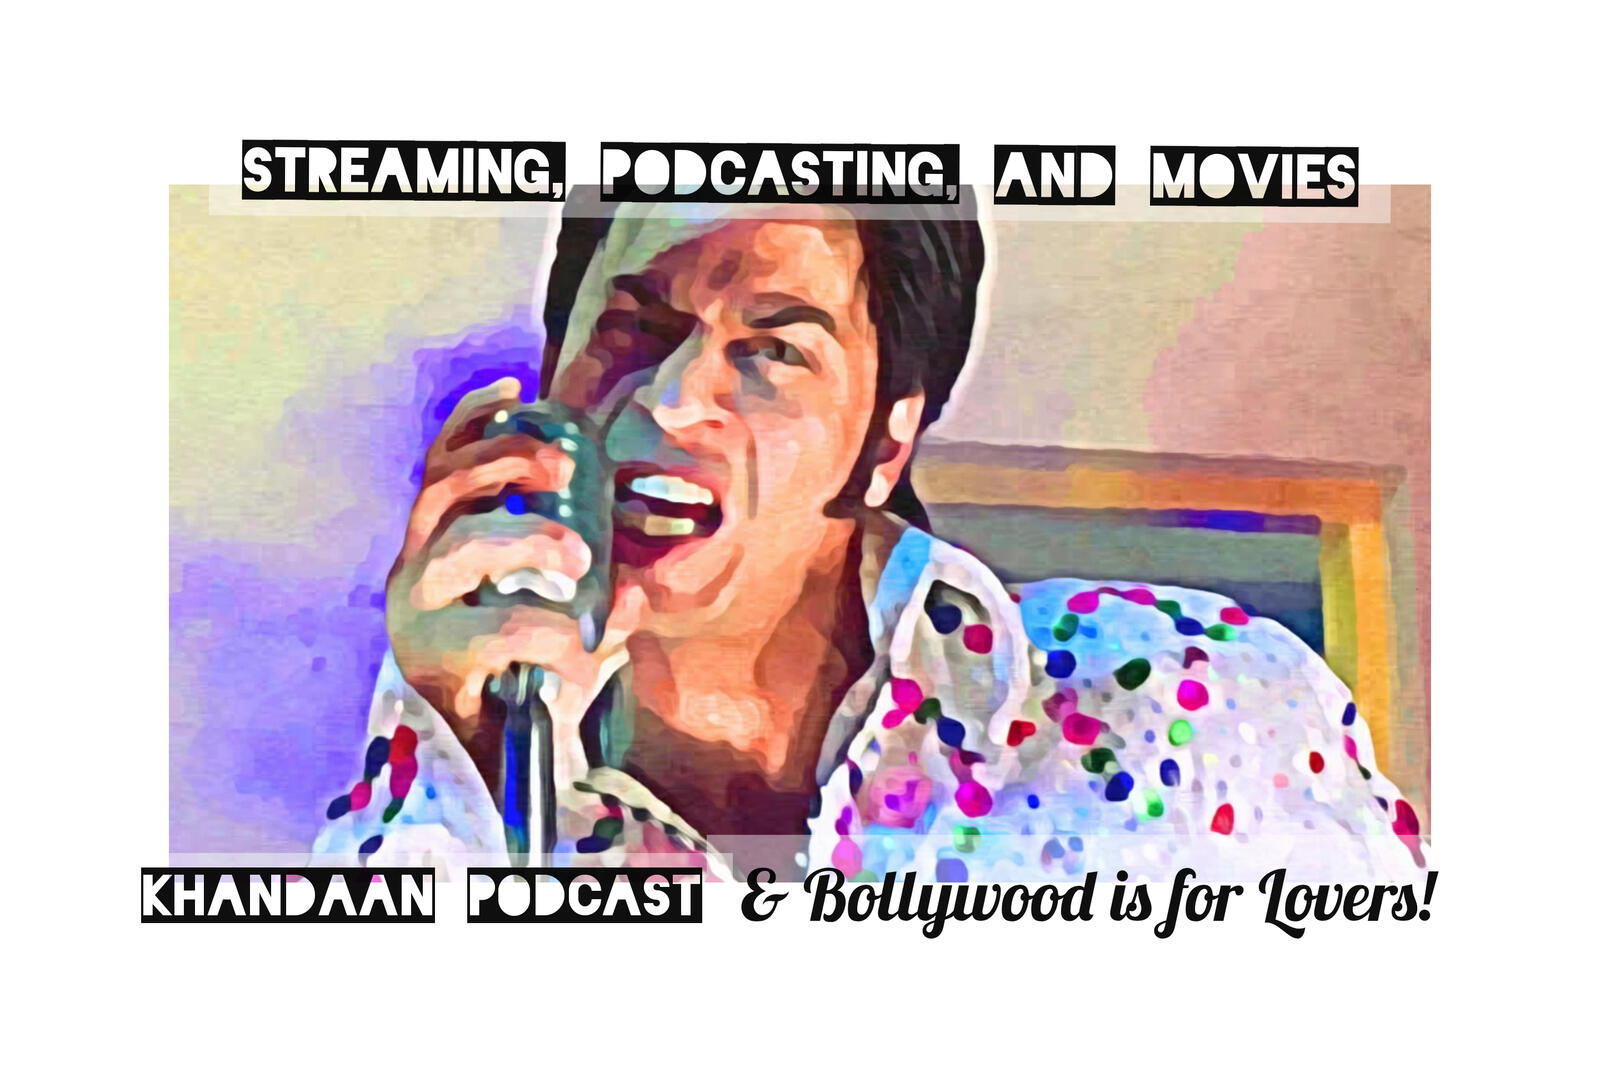 71: Ep 71- Streaming, Podcasting and Movies with Matt and Erin from @BollywoodPod